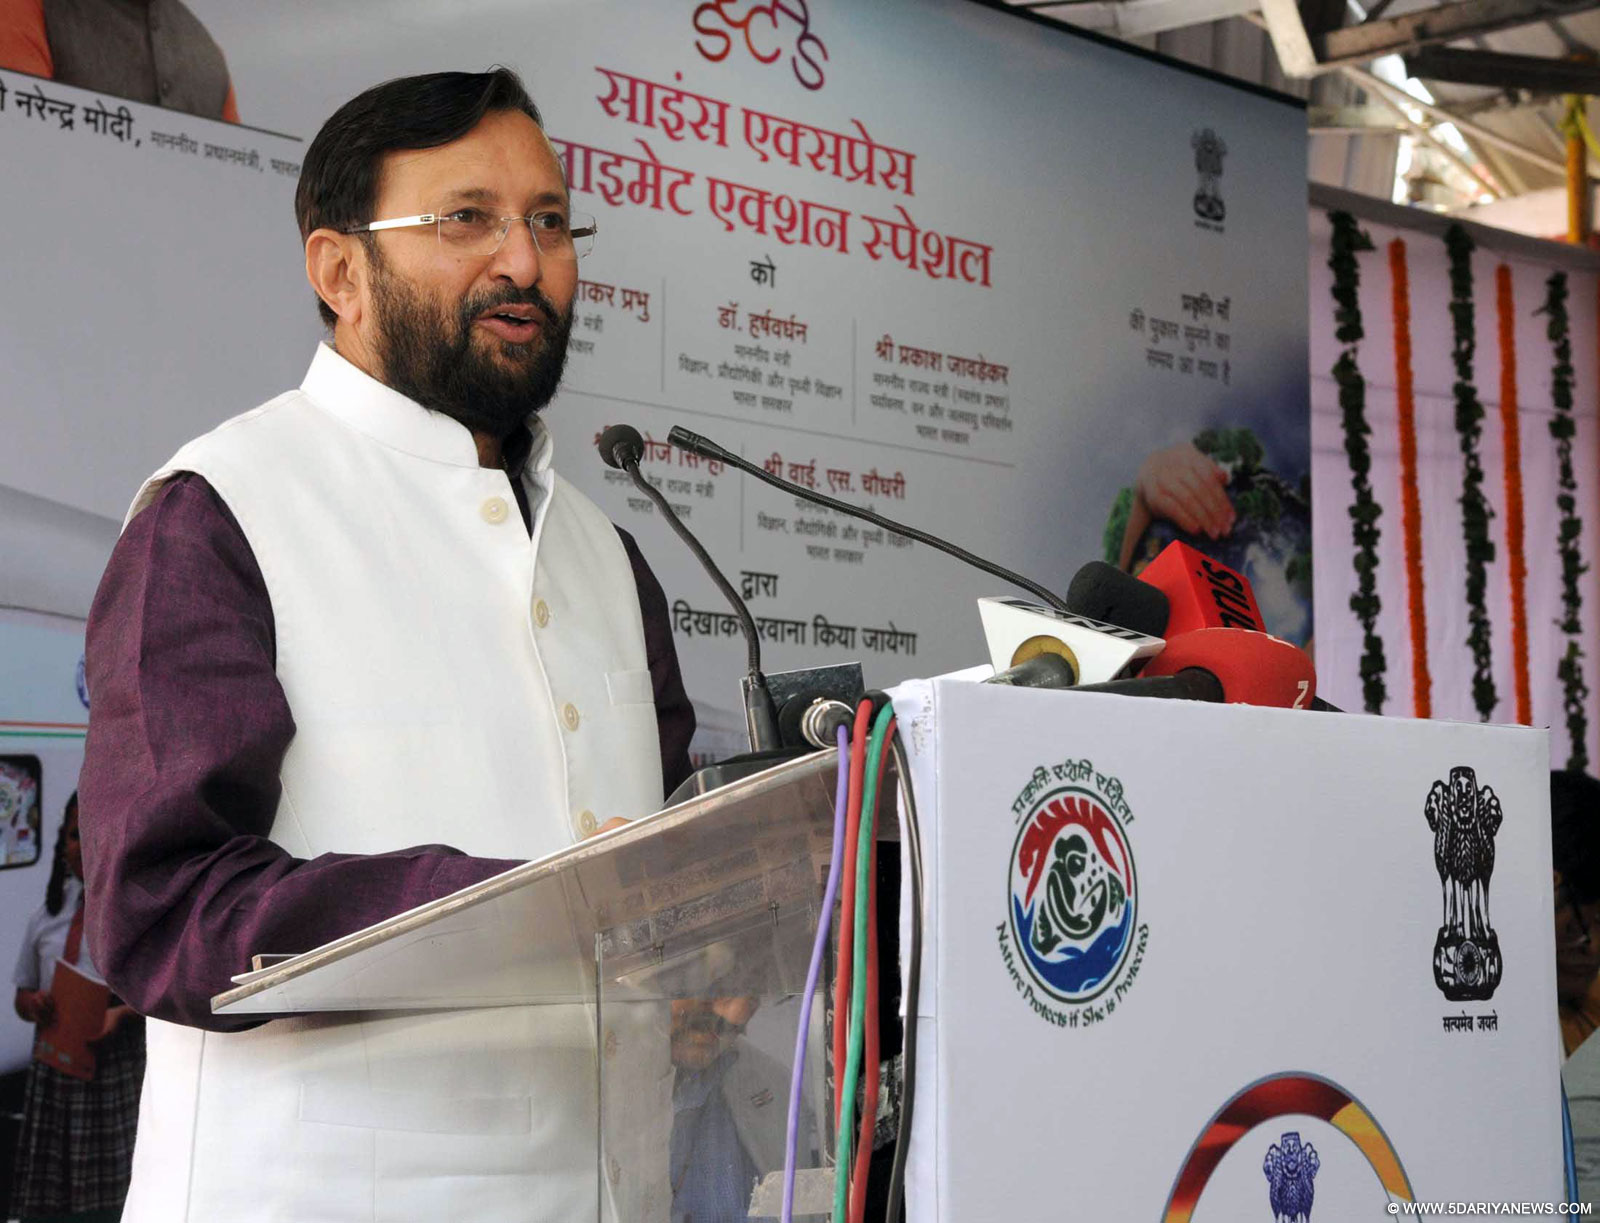 Uploads/2015/10/15/en-news-08281354-Prakash-Javadekar-addressing.jpg